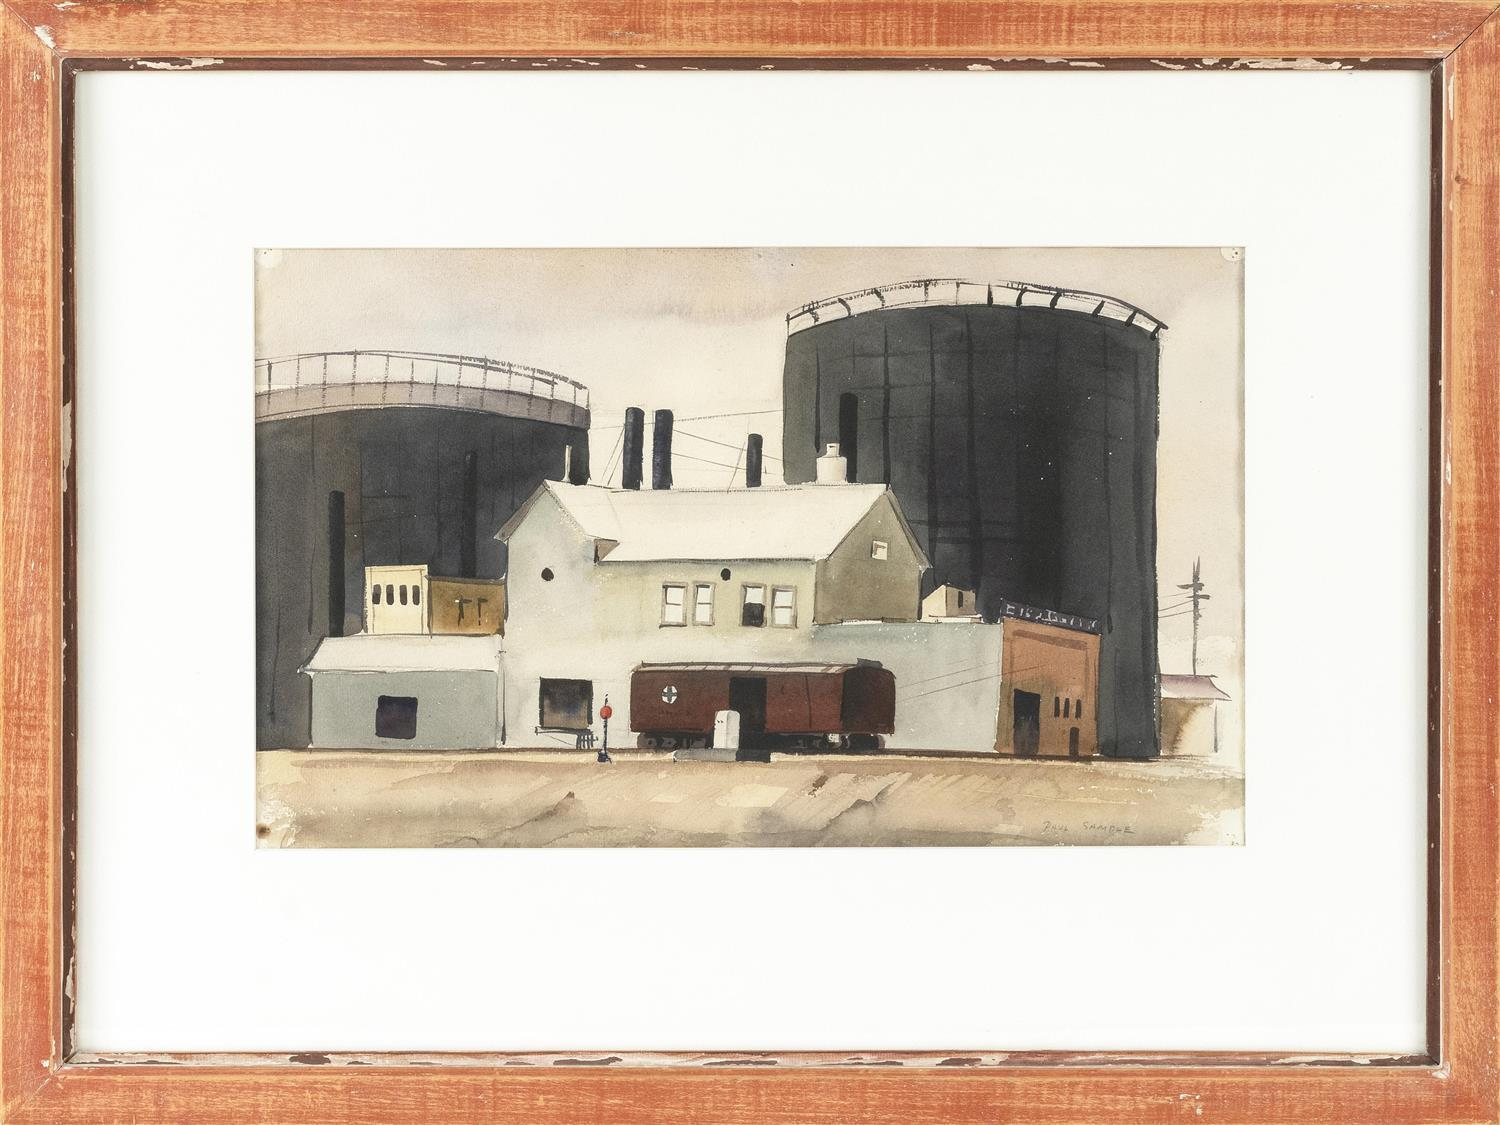 """PAUL STARRETT SAMPLE, New Hampshire/California/Vermont, 1896-1974, """"Lime Hydrater""""., Watercolor on paper, 11.25"""" x 18.75"""" sight. Fra..."""